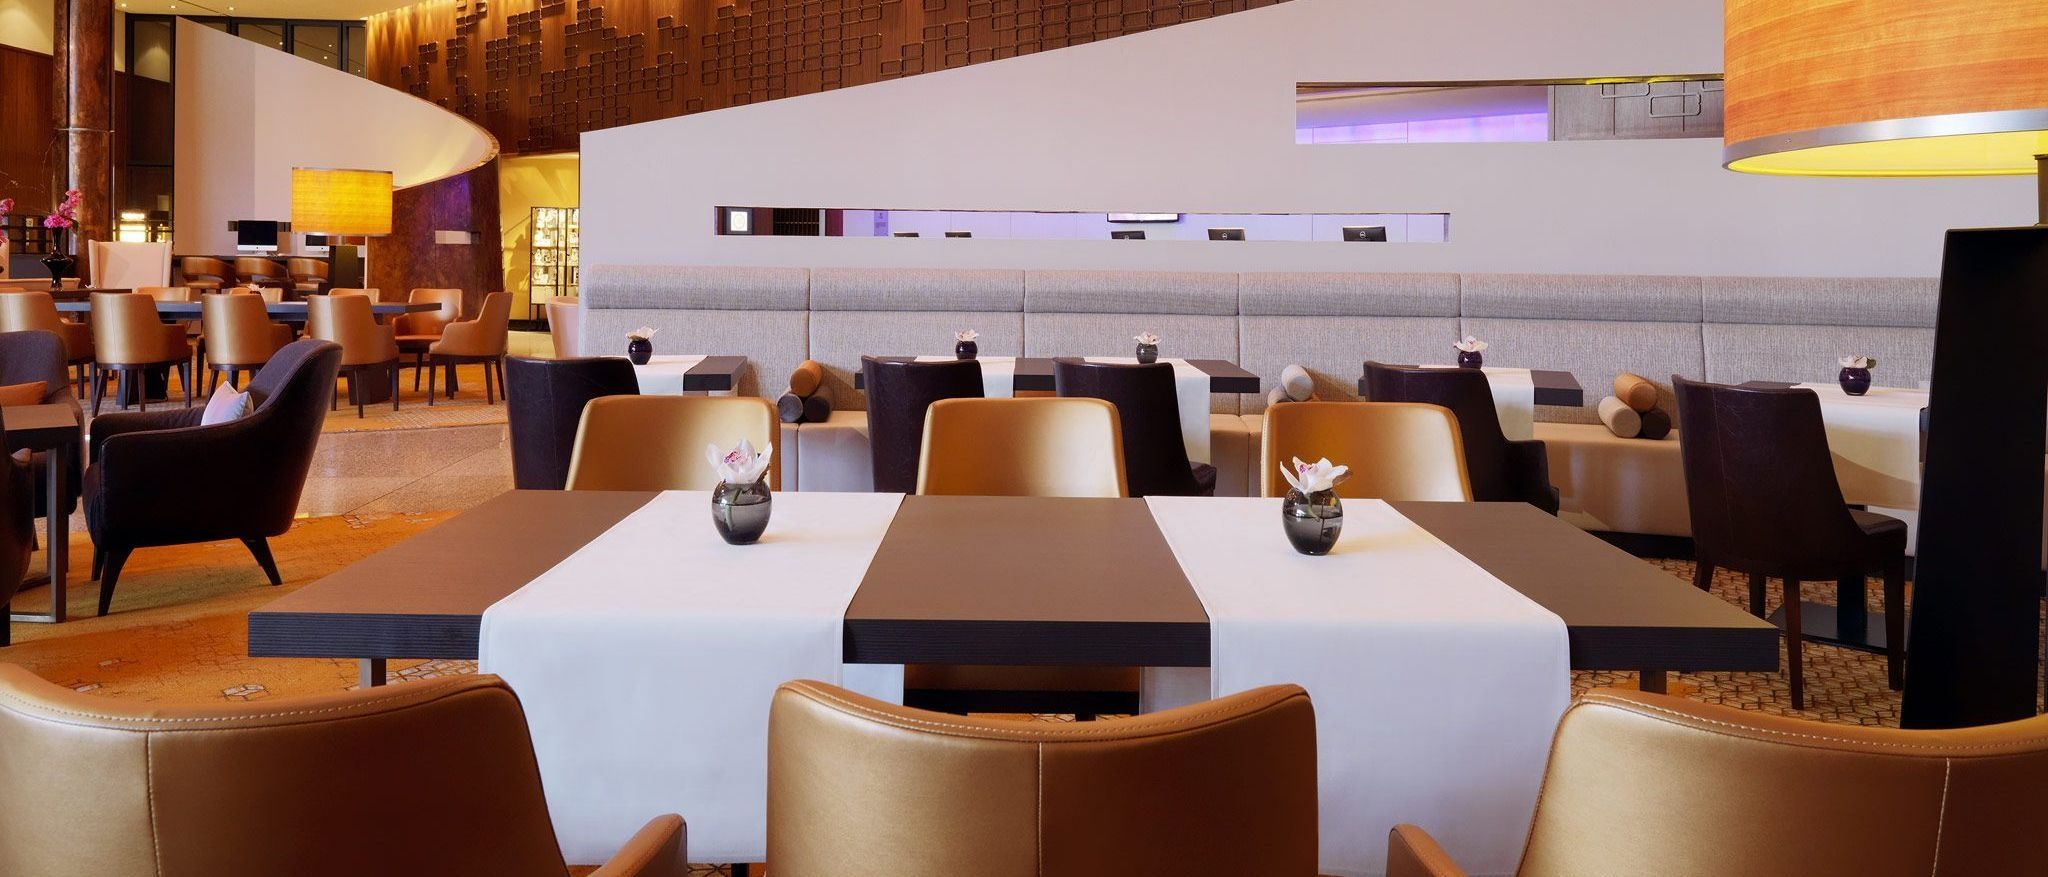 Ellipse Lounge Restaurant im Sheraton Berlin Grand Hotel Esplanade